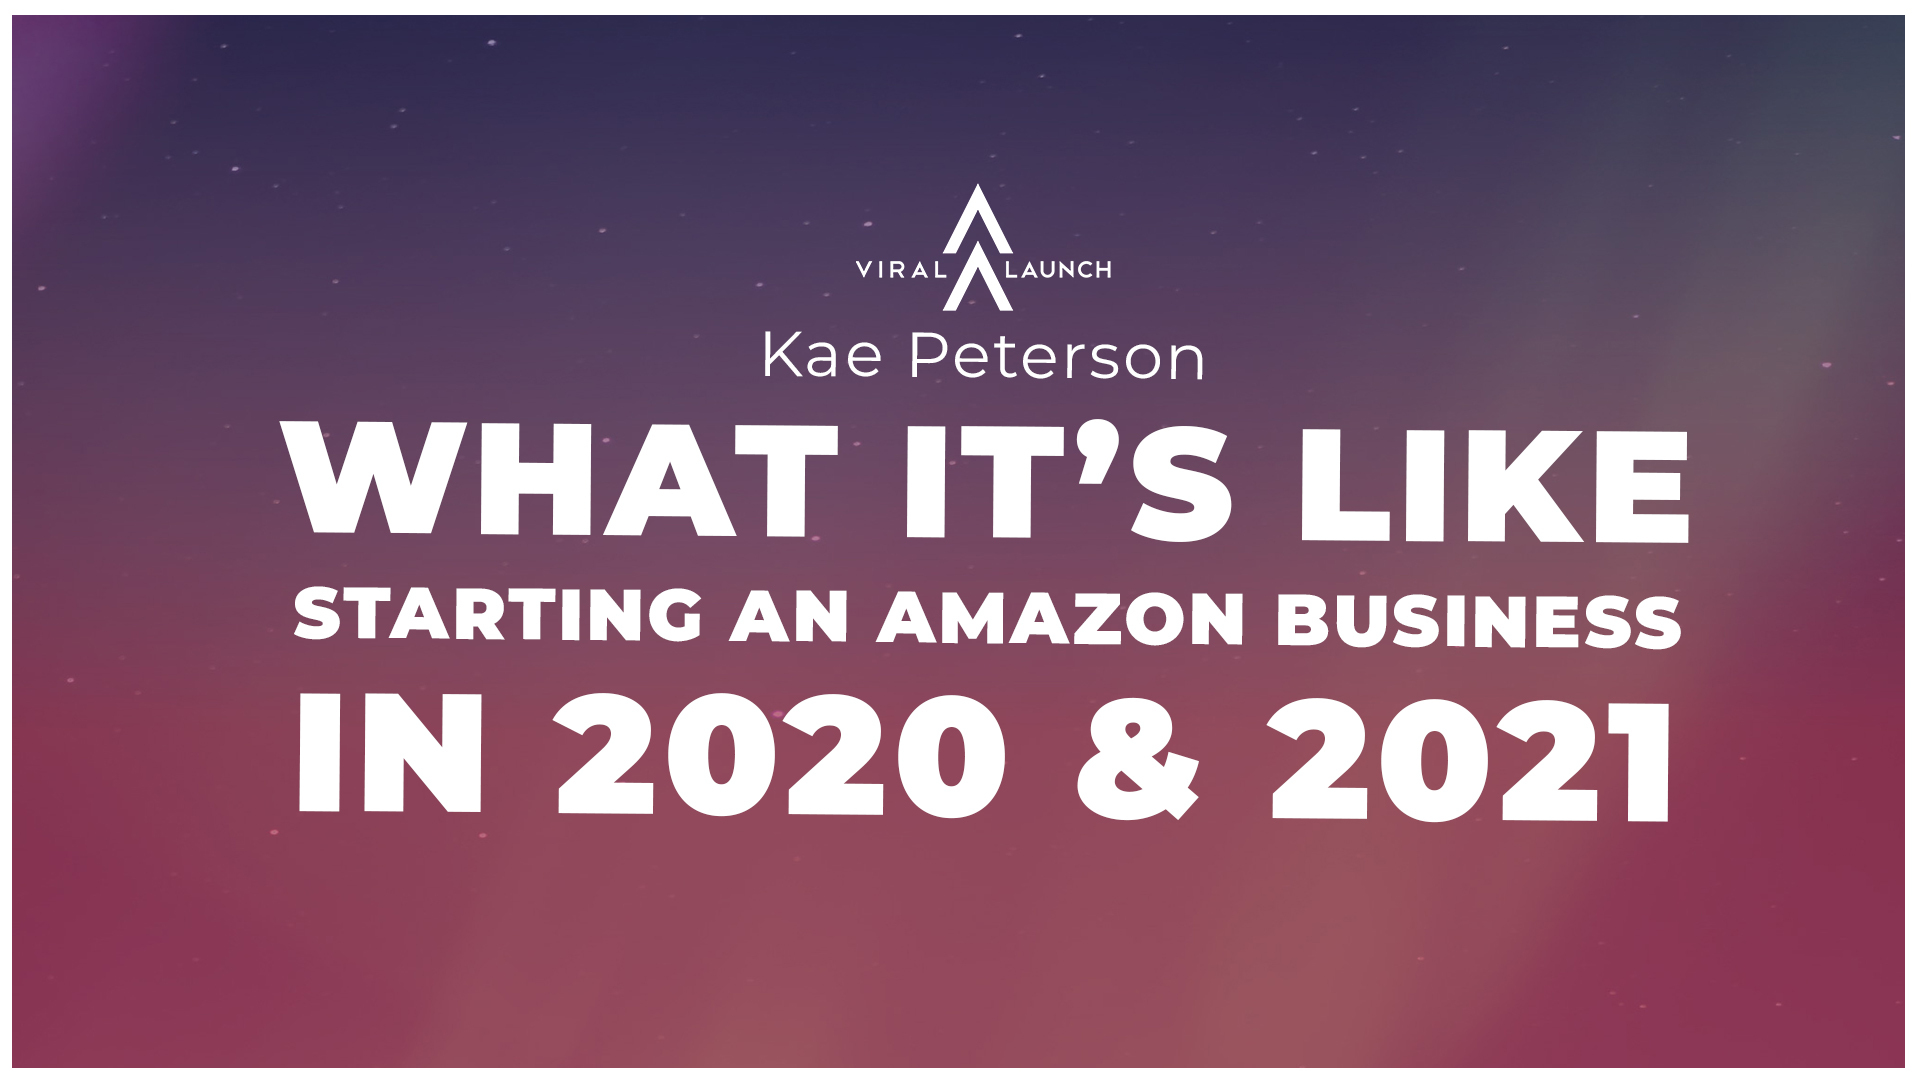 what it's like starting an amazon business in 2020 and 2021